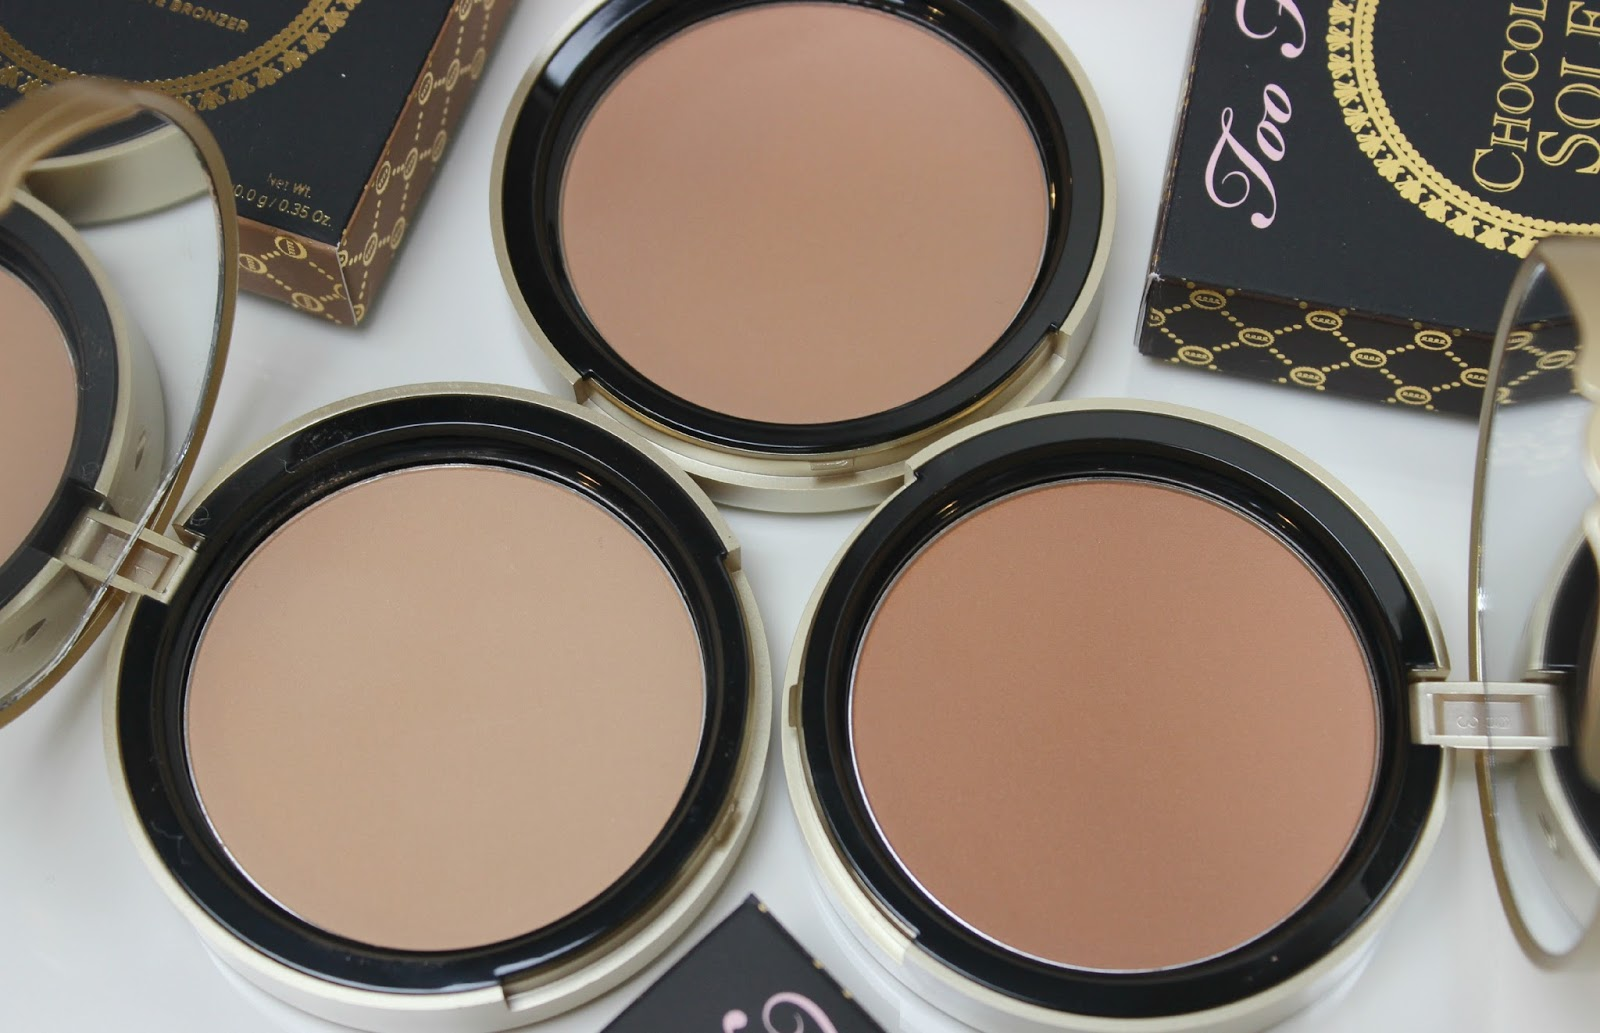 The bronzer for all complexions | Tattooed Tealady